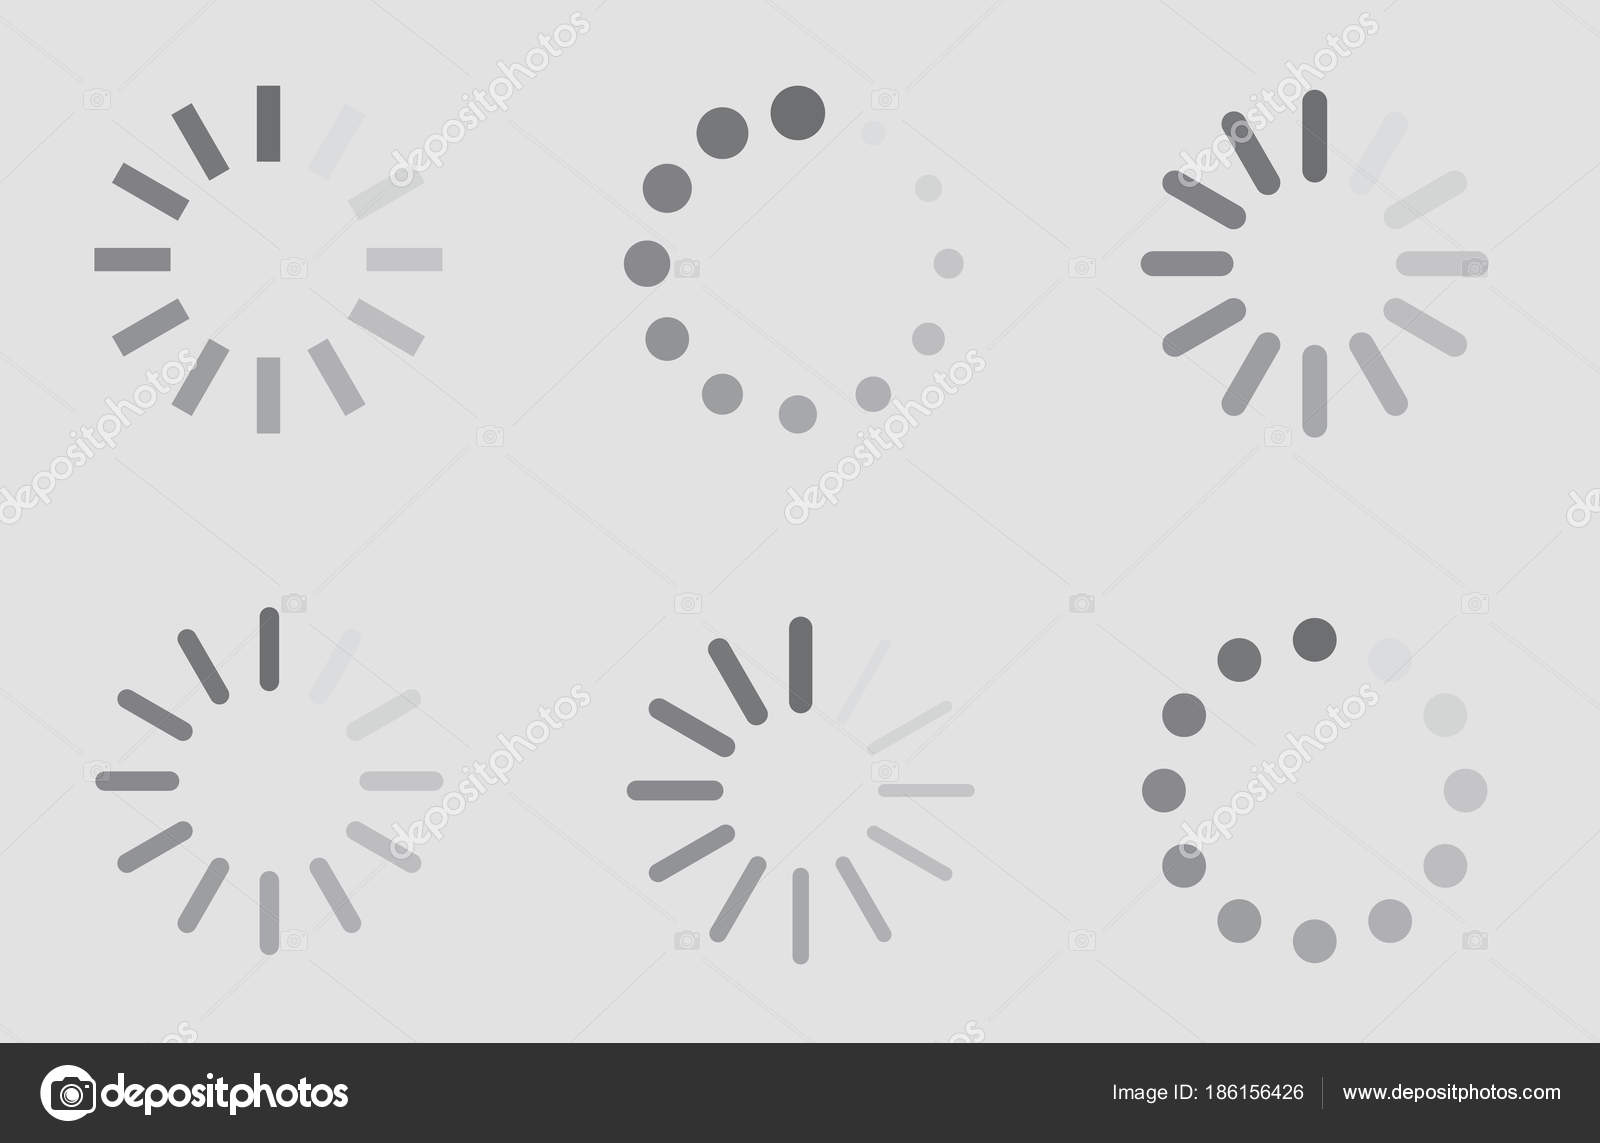 Download sign indicator waiting icons set loading symbol stock download sign indicator waiting icons set loading symbol stock vector biocorpaavc Image collections